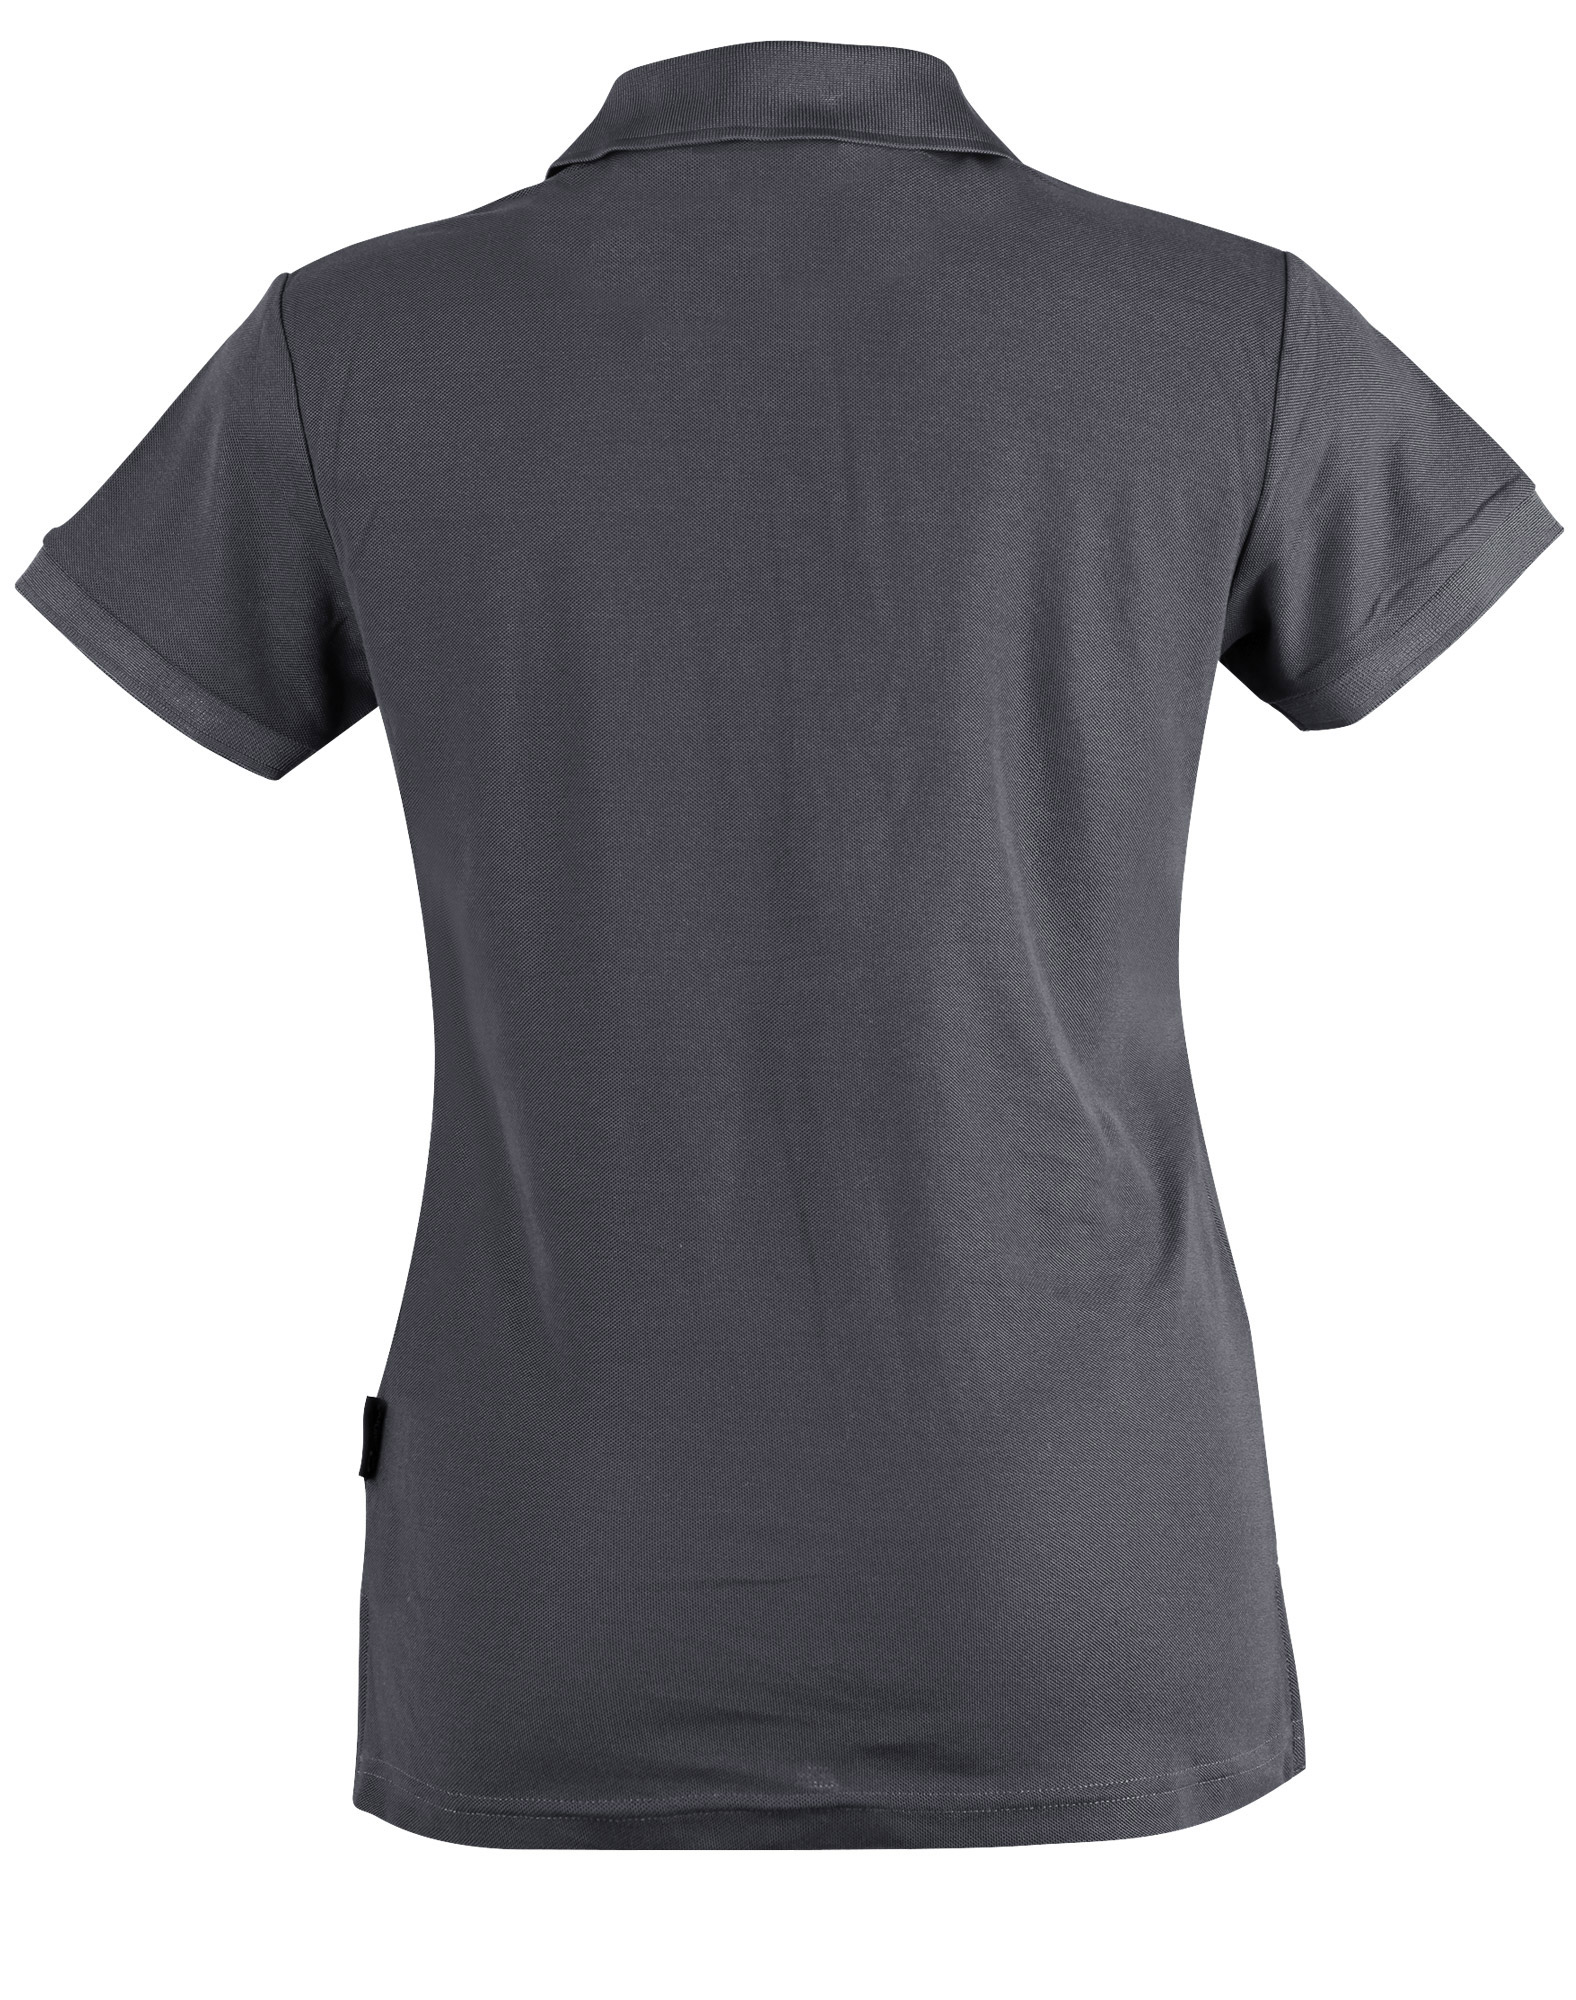 https://s3-ap-southeast-1.amazonaws.com/ws-imgs/POLOSHIRTS/PS64_Charcoal_Back.jpg